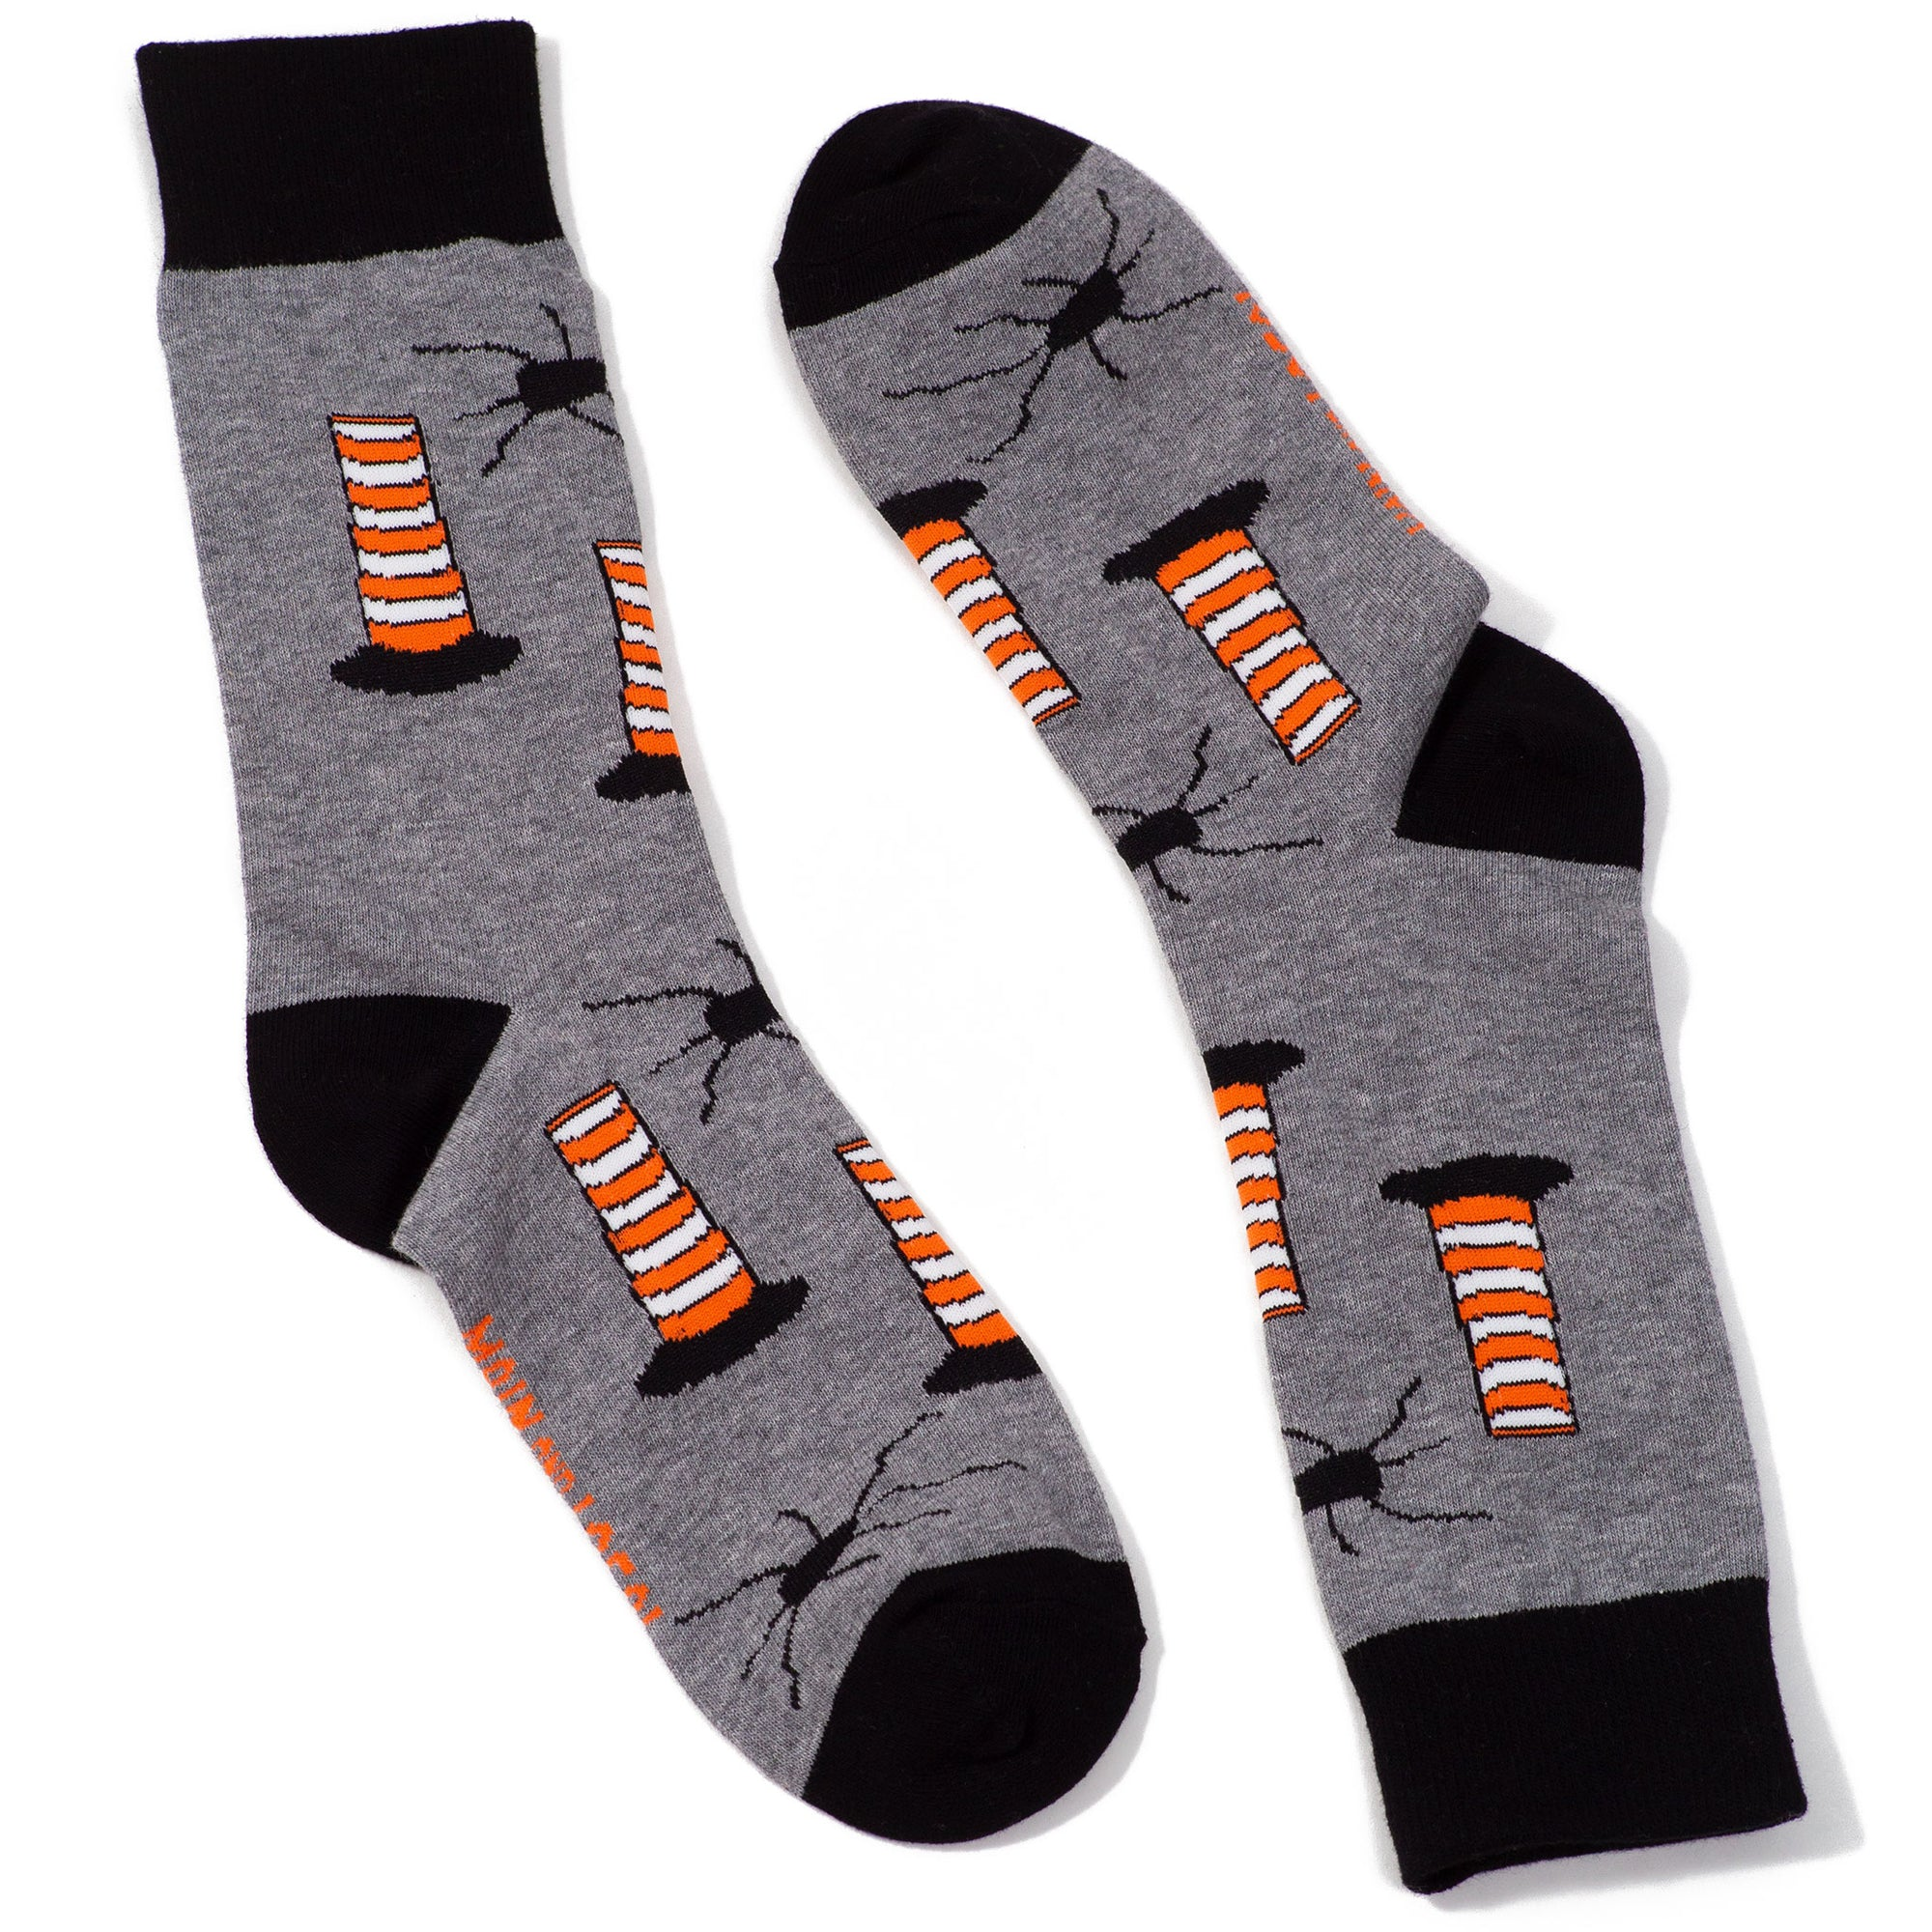 Montreal Construction Cone Socks - Main and Local